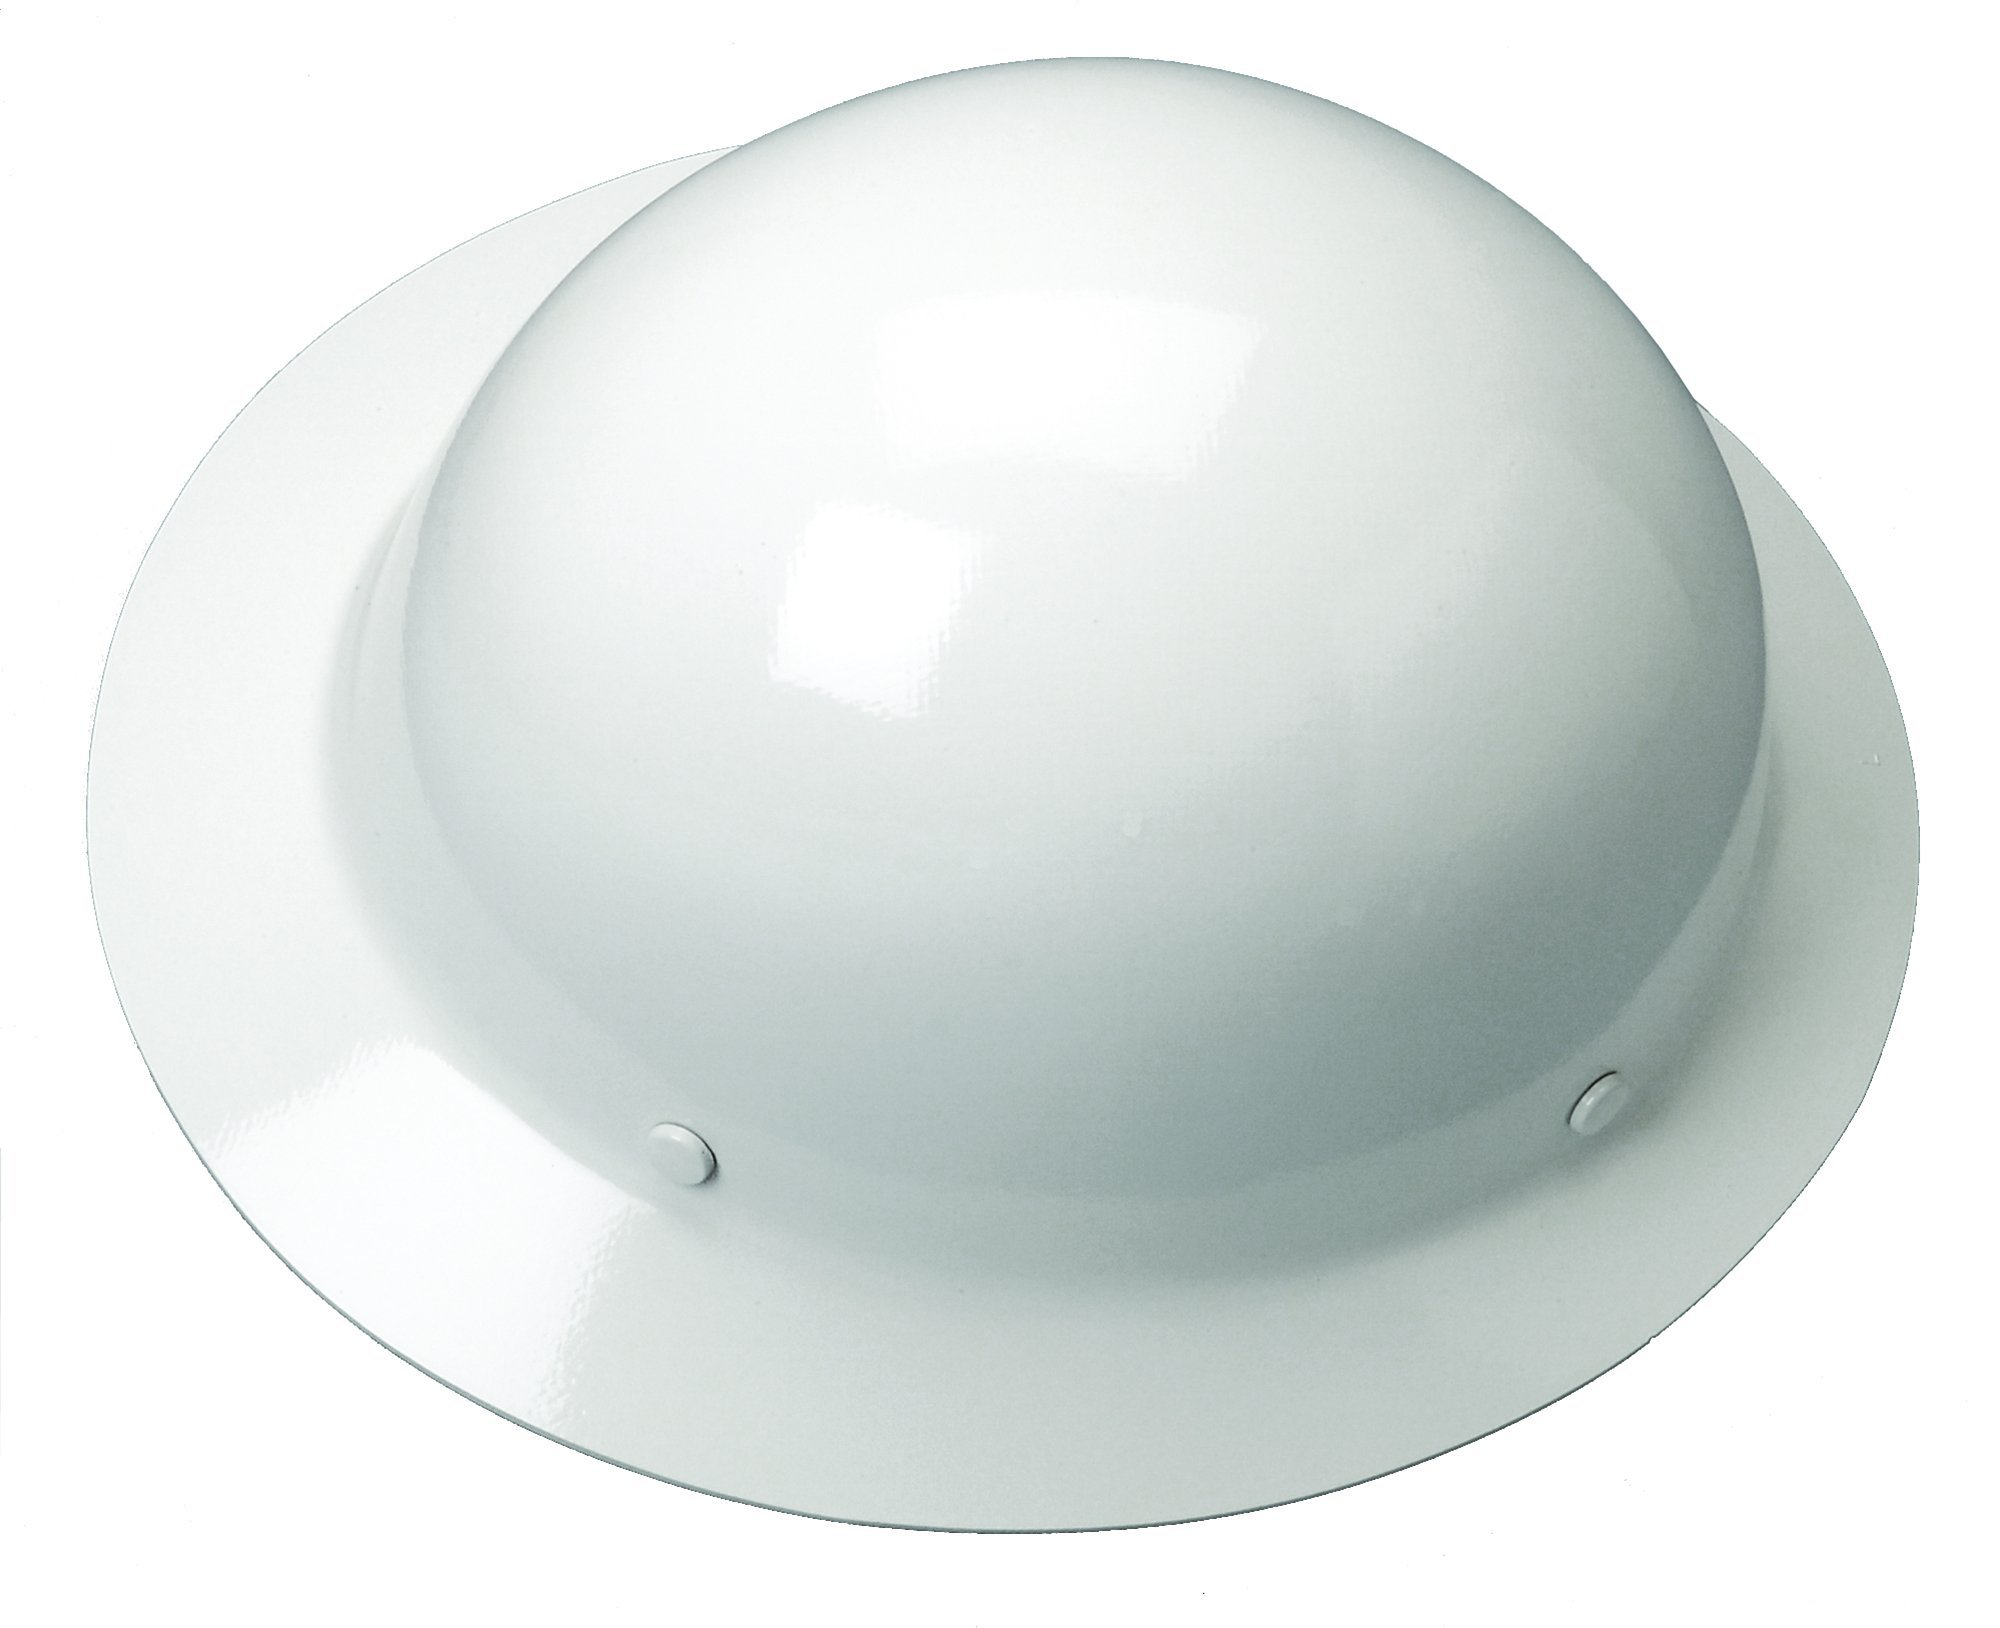 MSA Safety 454665 Skullgard Full-Brim Protective Hat w/ Staz-On Suspension, White, Standard